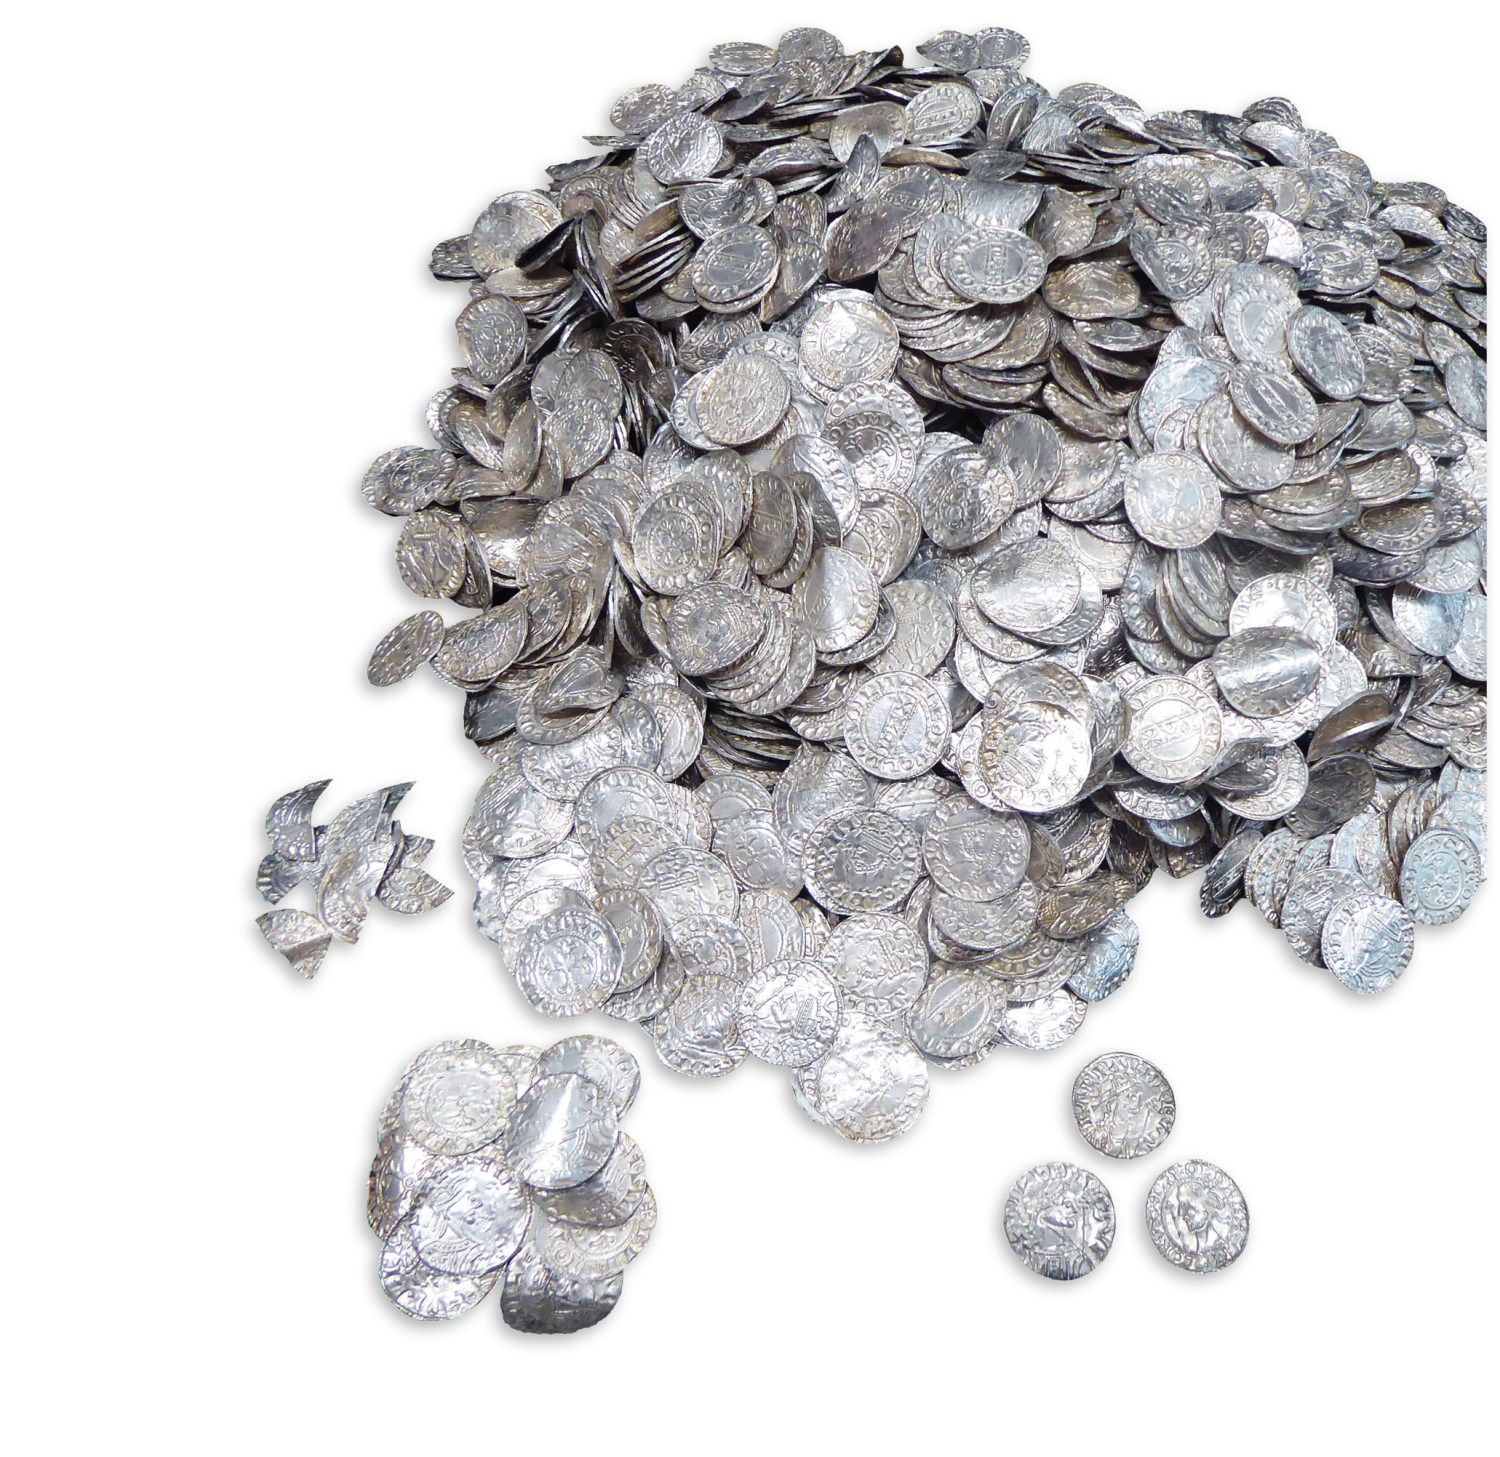 right Found in Somerset farmland, the Chew Valley hoard is the largest-known coin hoard dating from the immediate aftermath of the Norman Conquest. This photo shows just a sample of its more than 2,500 coins.